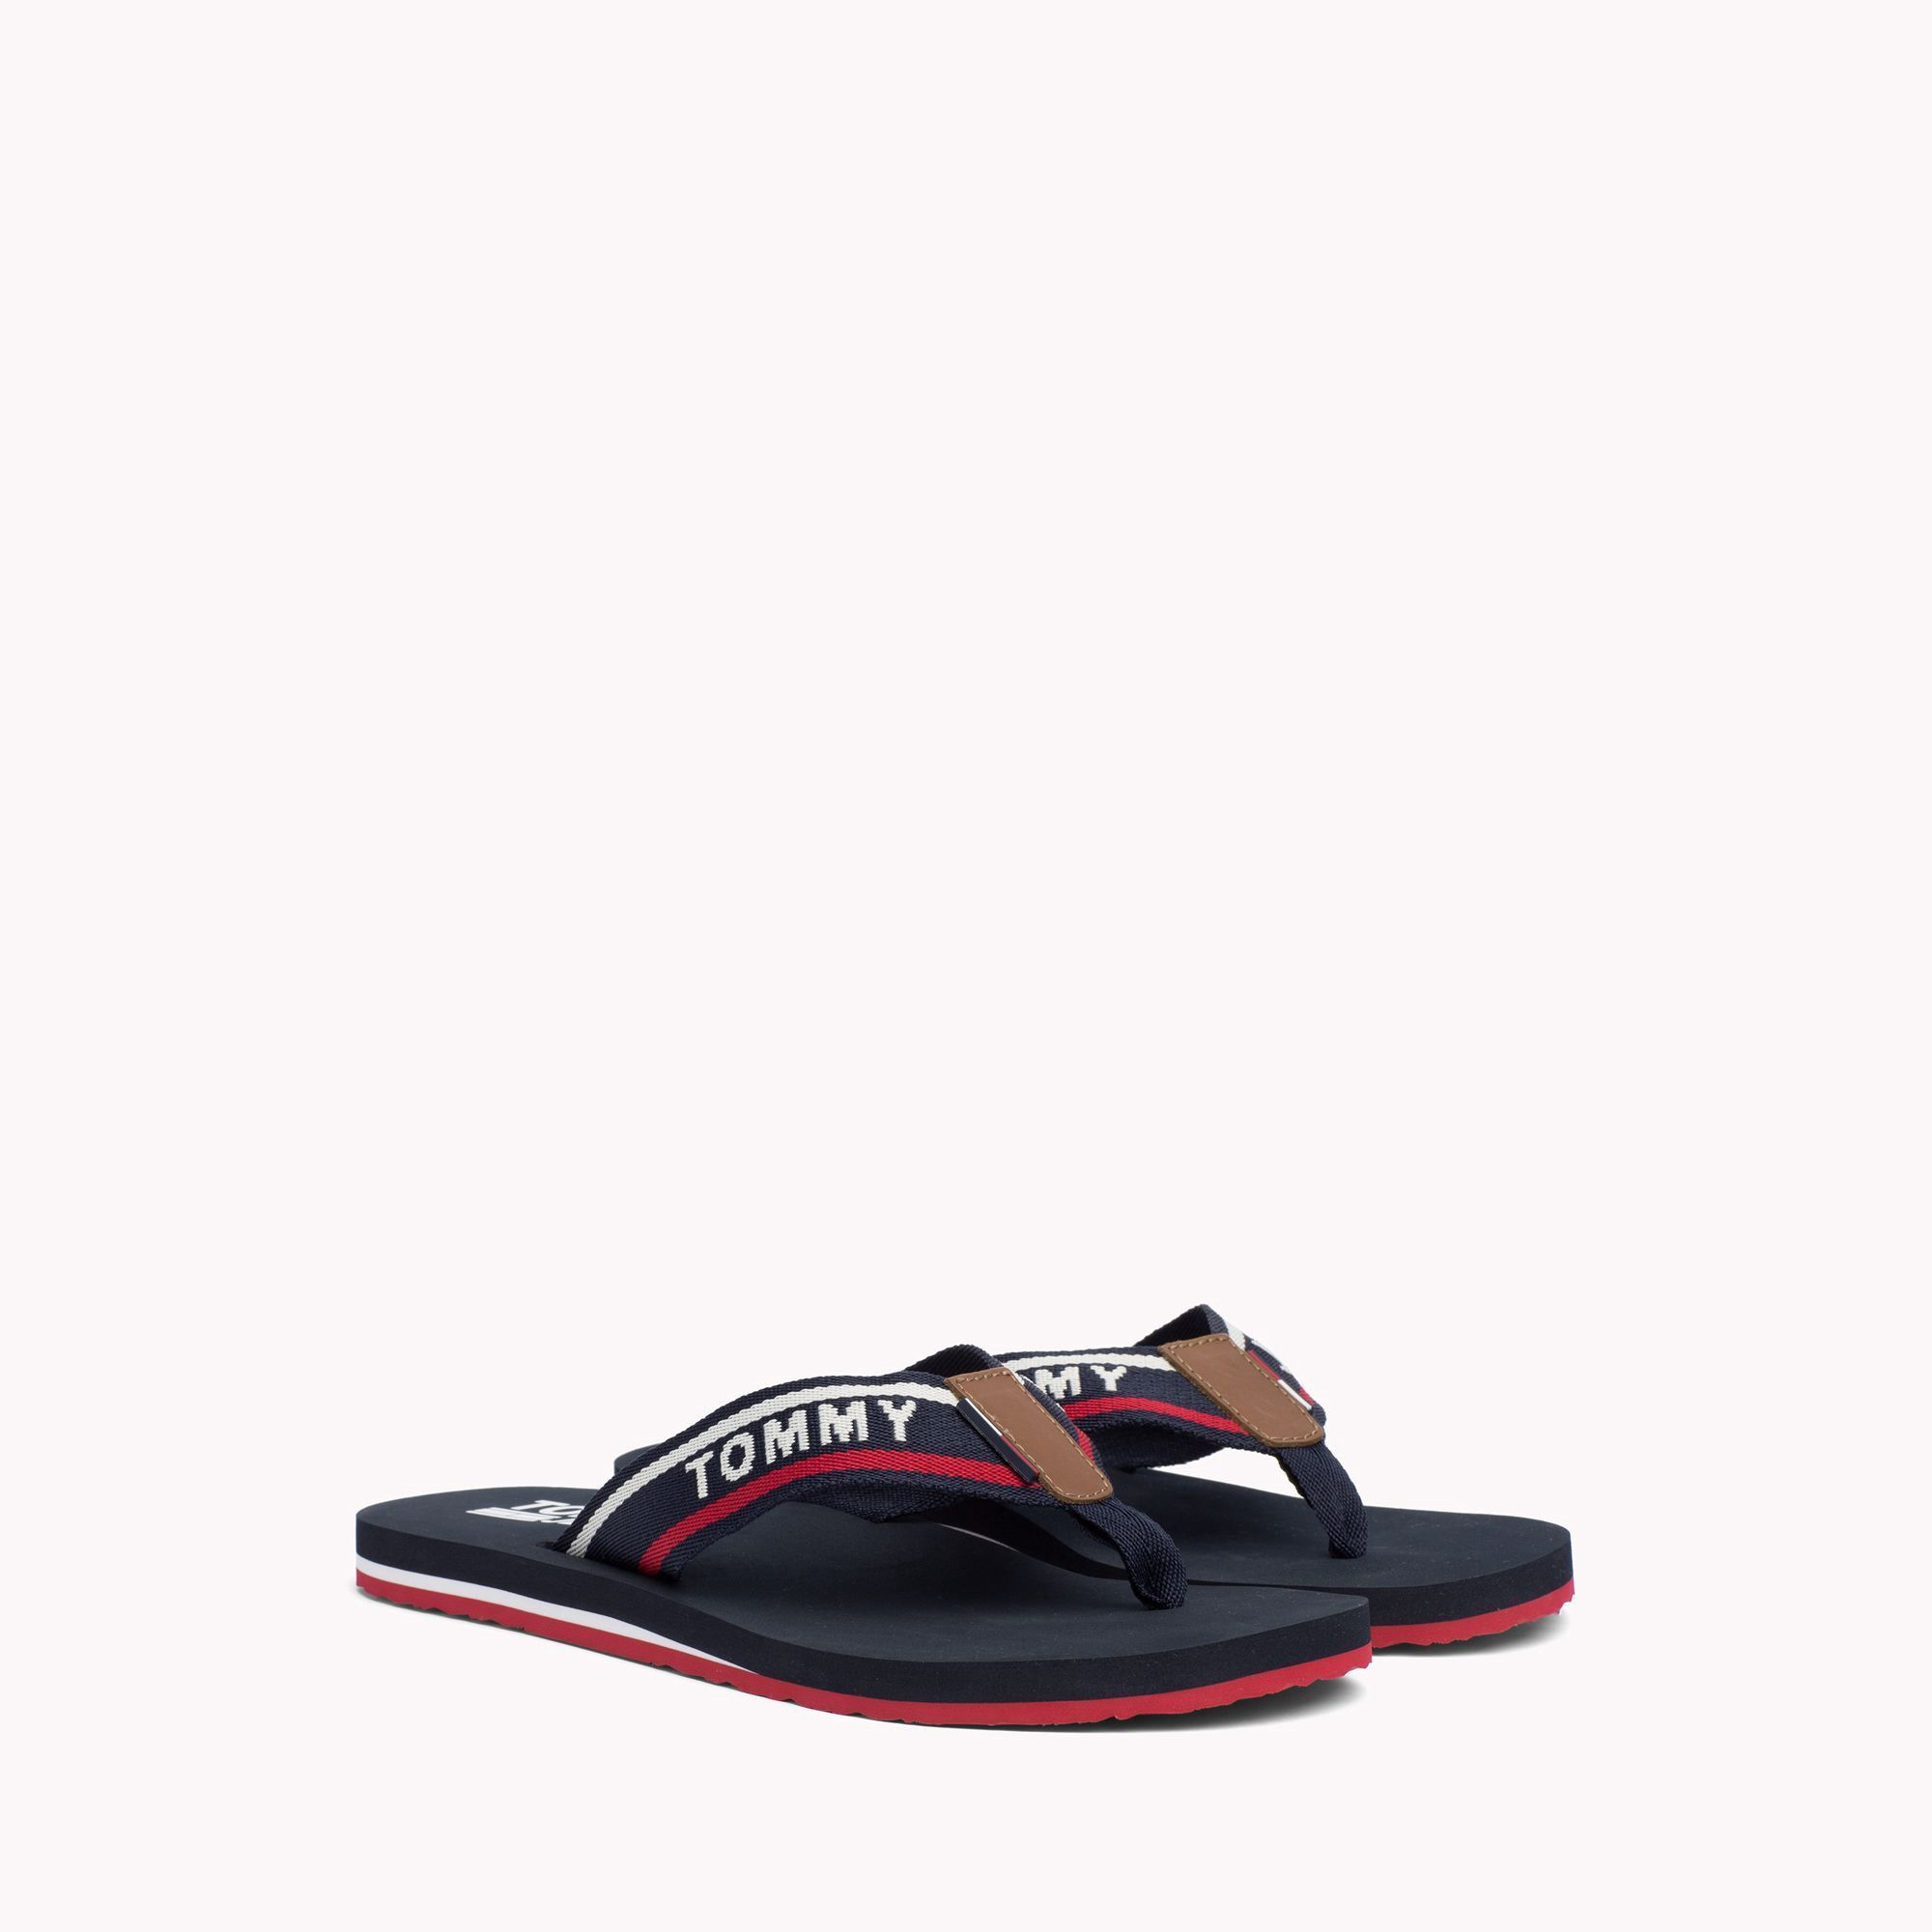 91a92380c6a7 TOMMY HILFIGER Beach Sandal.  tommyhilfiger  shoes